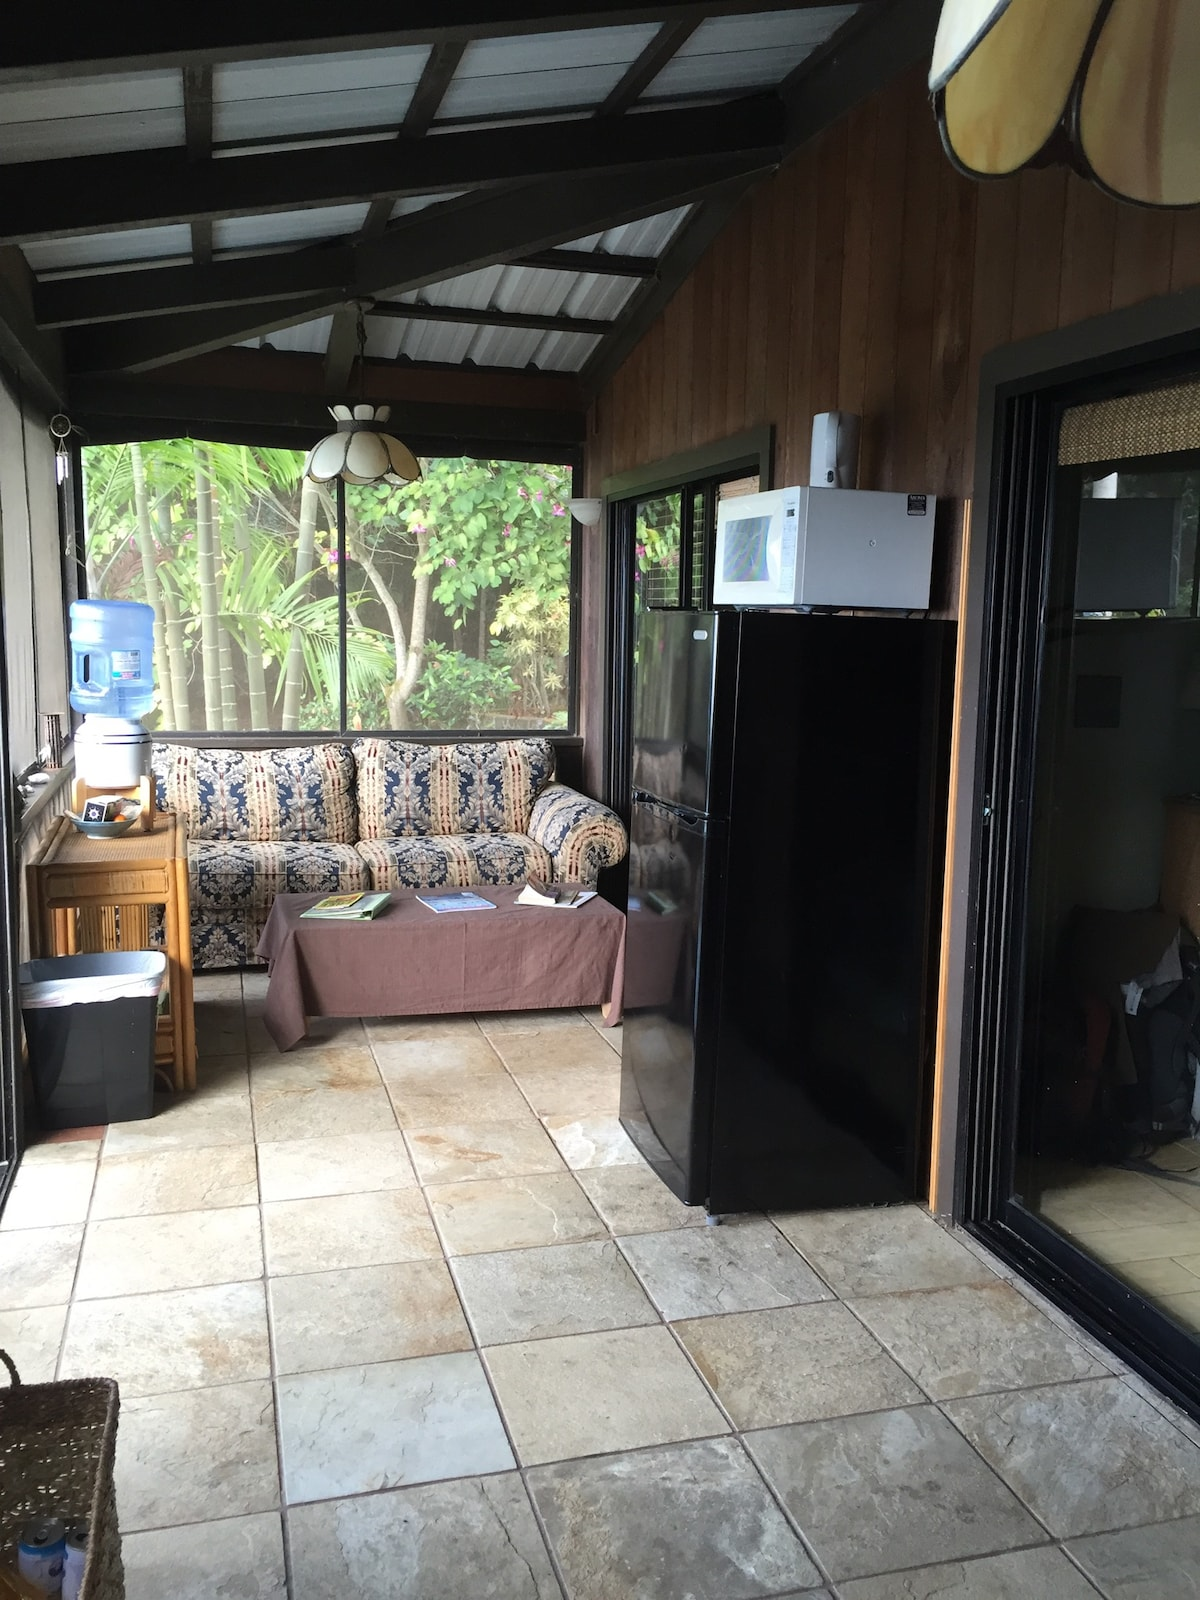 Spacious sunroom. Apartment size fridge, microwave, single burner induction cooktop, toaster and hot water kettle. Sofa at the far end of the room is your designated sofa. Perfect for relaxing or an extra guest.